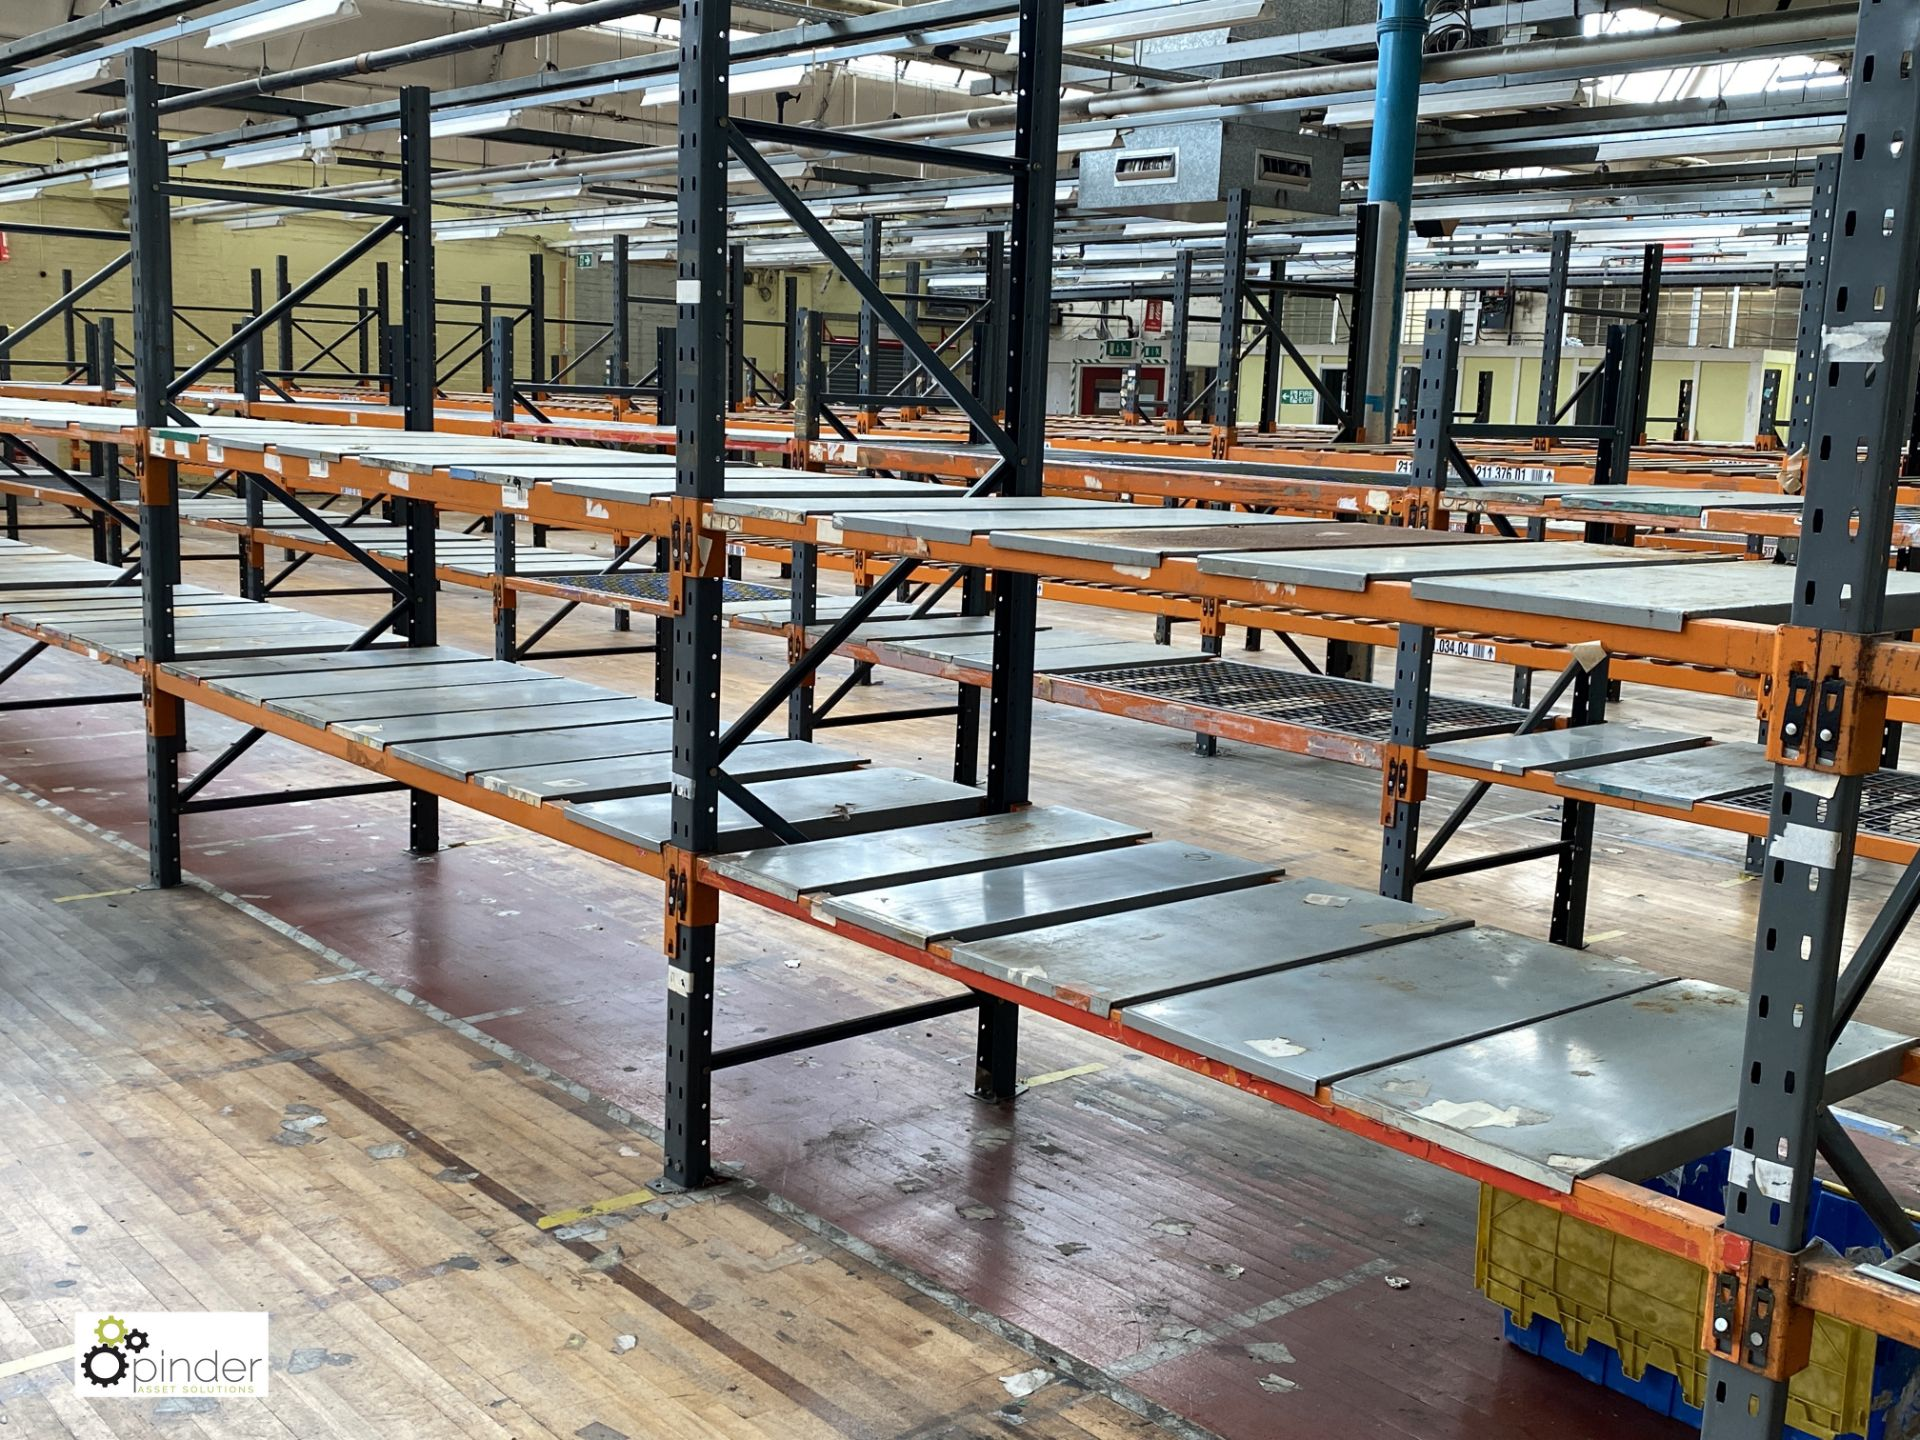 11 bays Dexion Speedlock boltless Racking, comprising 9 uprights 2440mm x 910mm, 3 uprights 1835mm x - Image 3 of 5